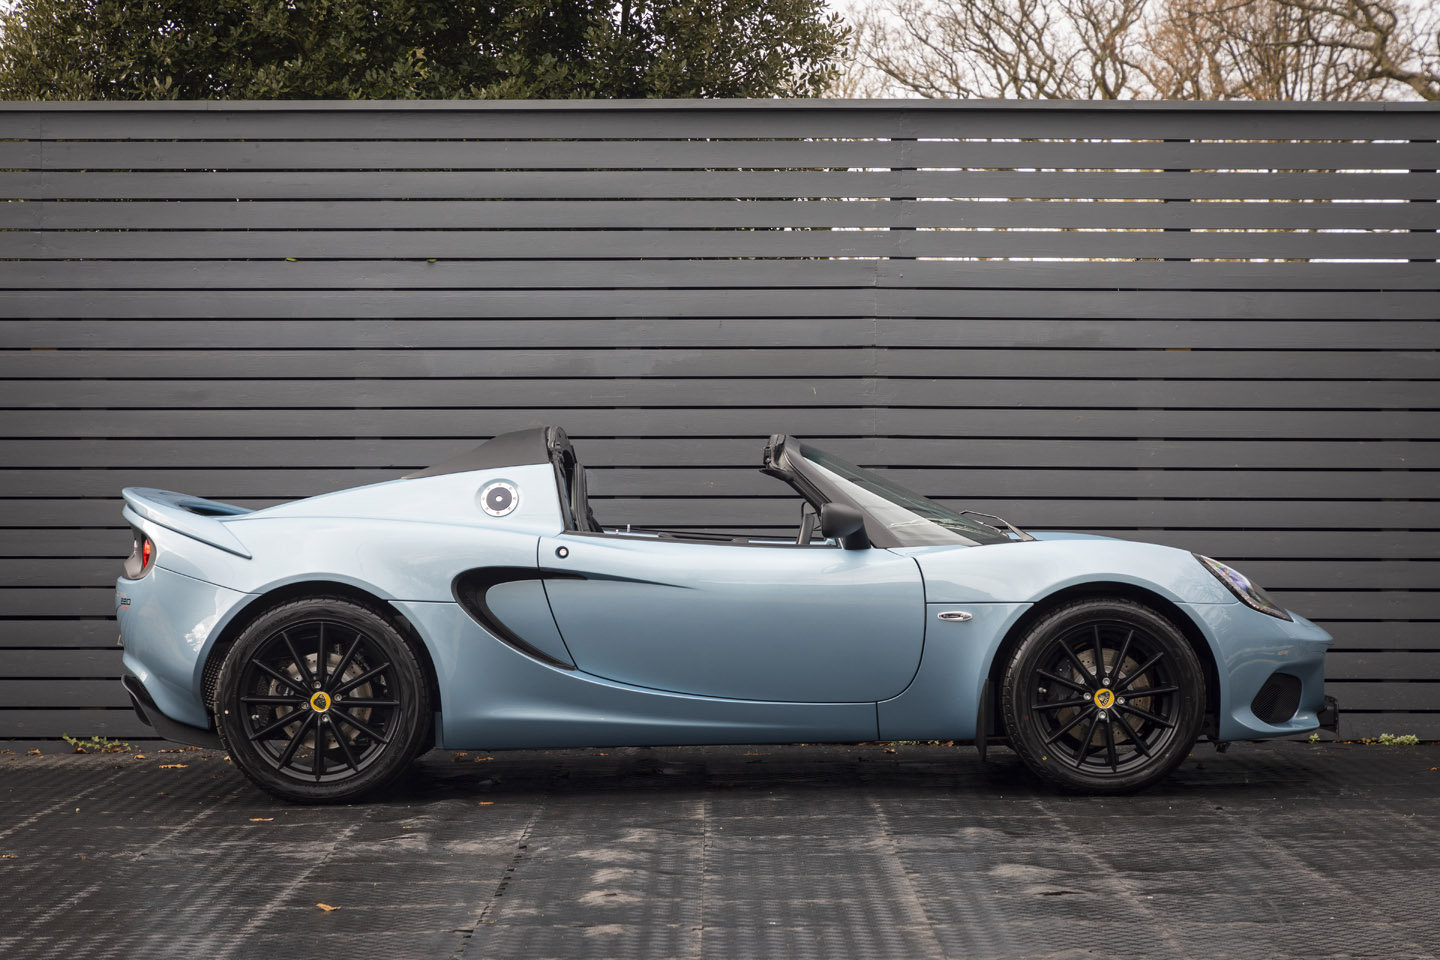 2019 LOTUS ELISE 220 SPORT For Sale (picture 3 of 6)